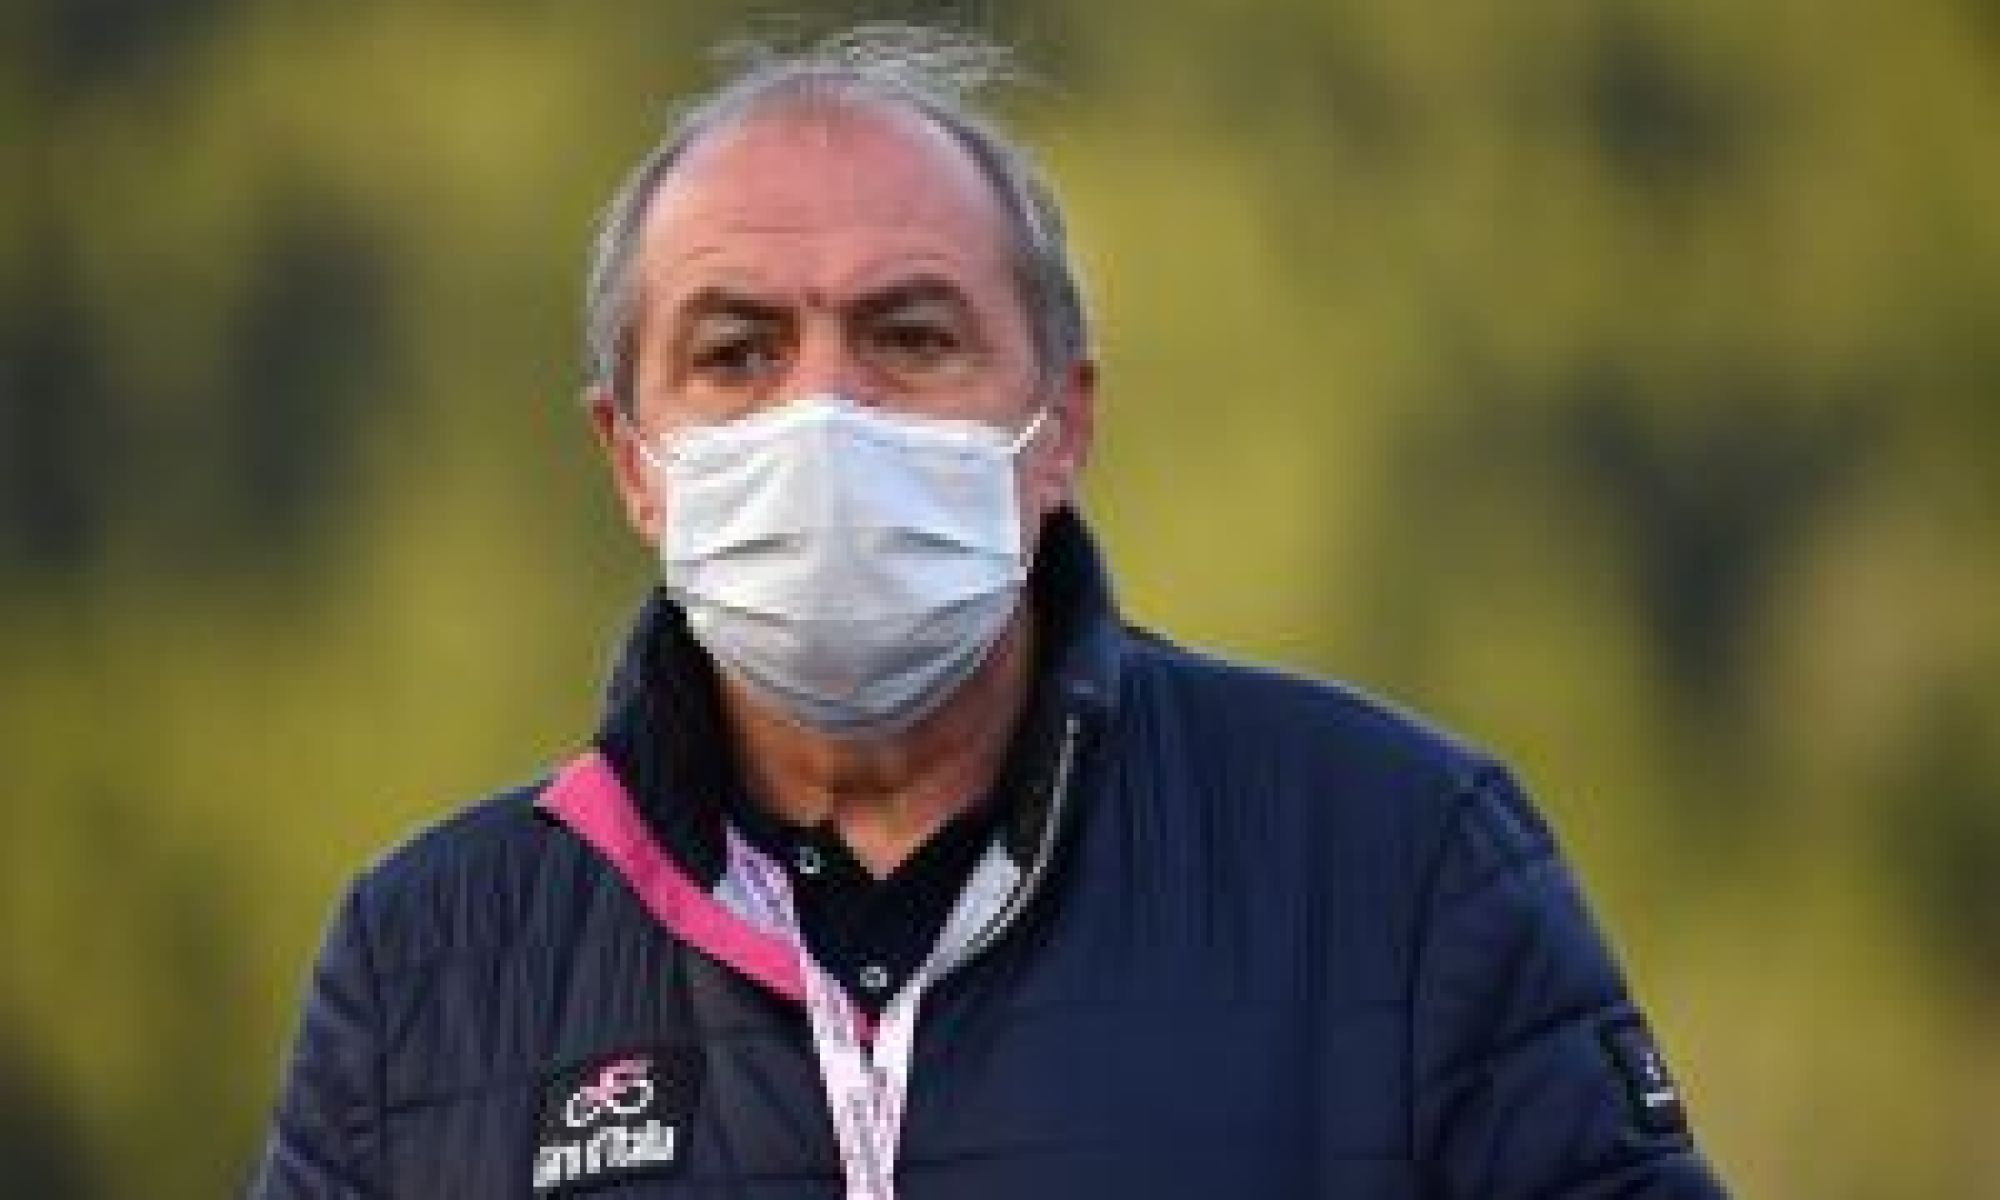 <div>'Someone will pay' says Giro d'Italia race director following stage shortening debacle</div>